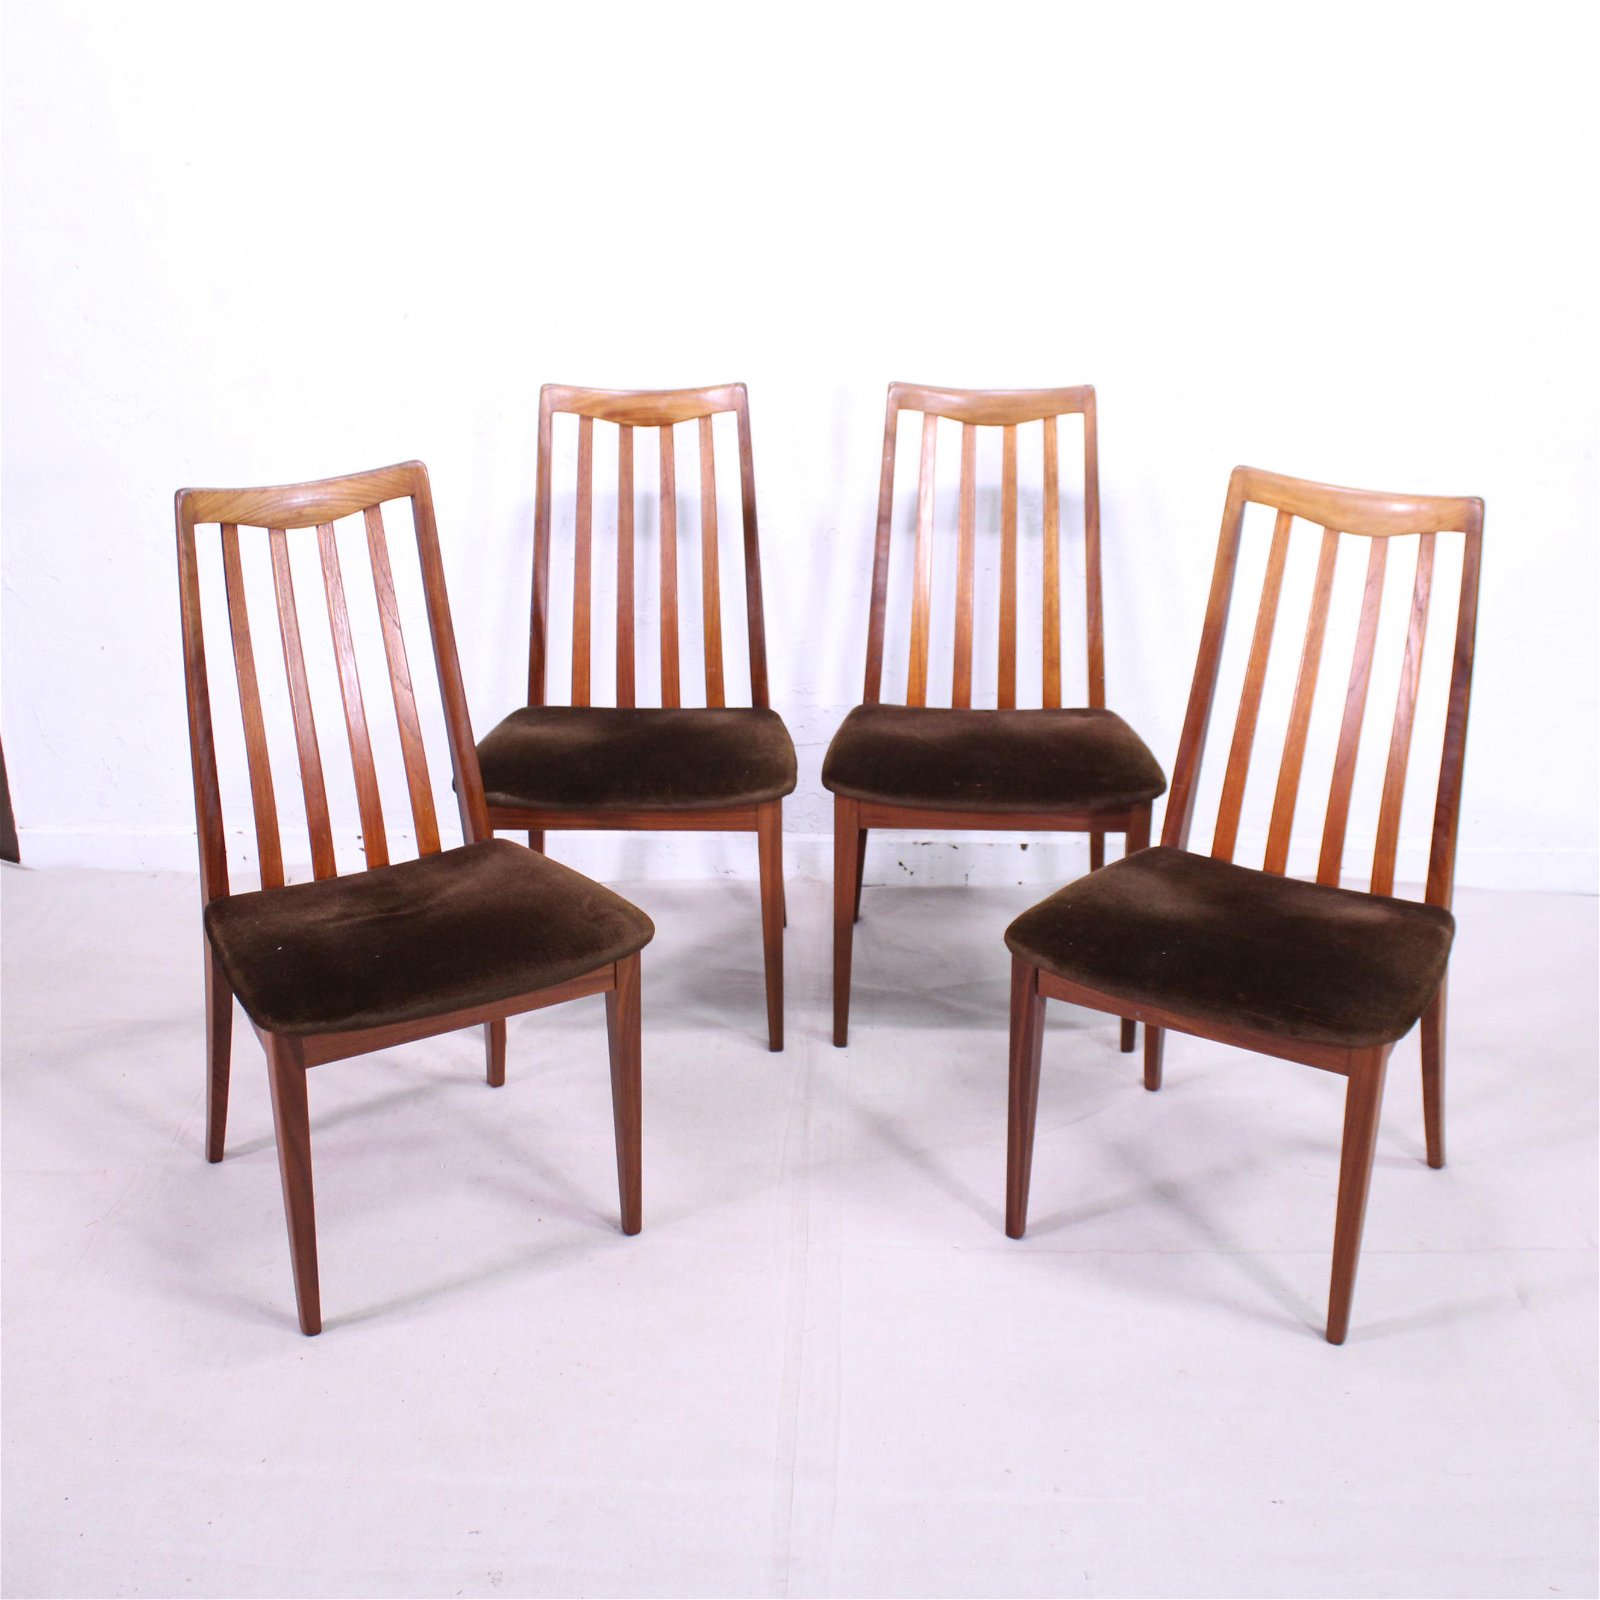 """4 Mid Century Modern """"Fresco"""" Dining Chairs By G-Plan"""